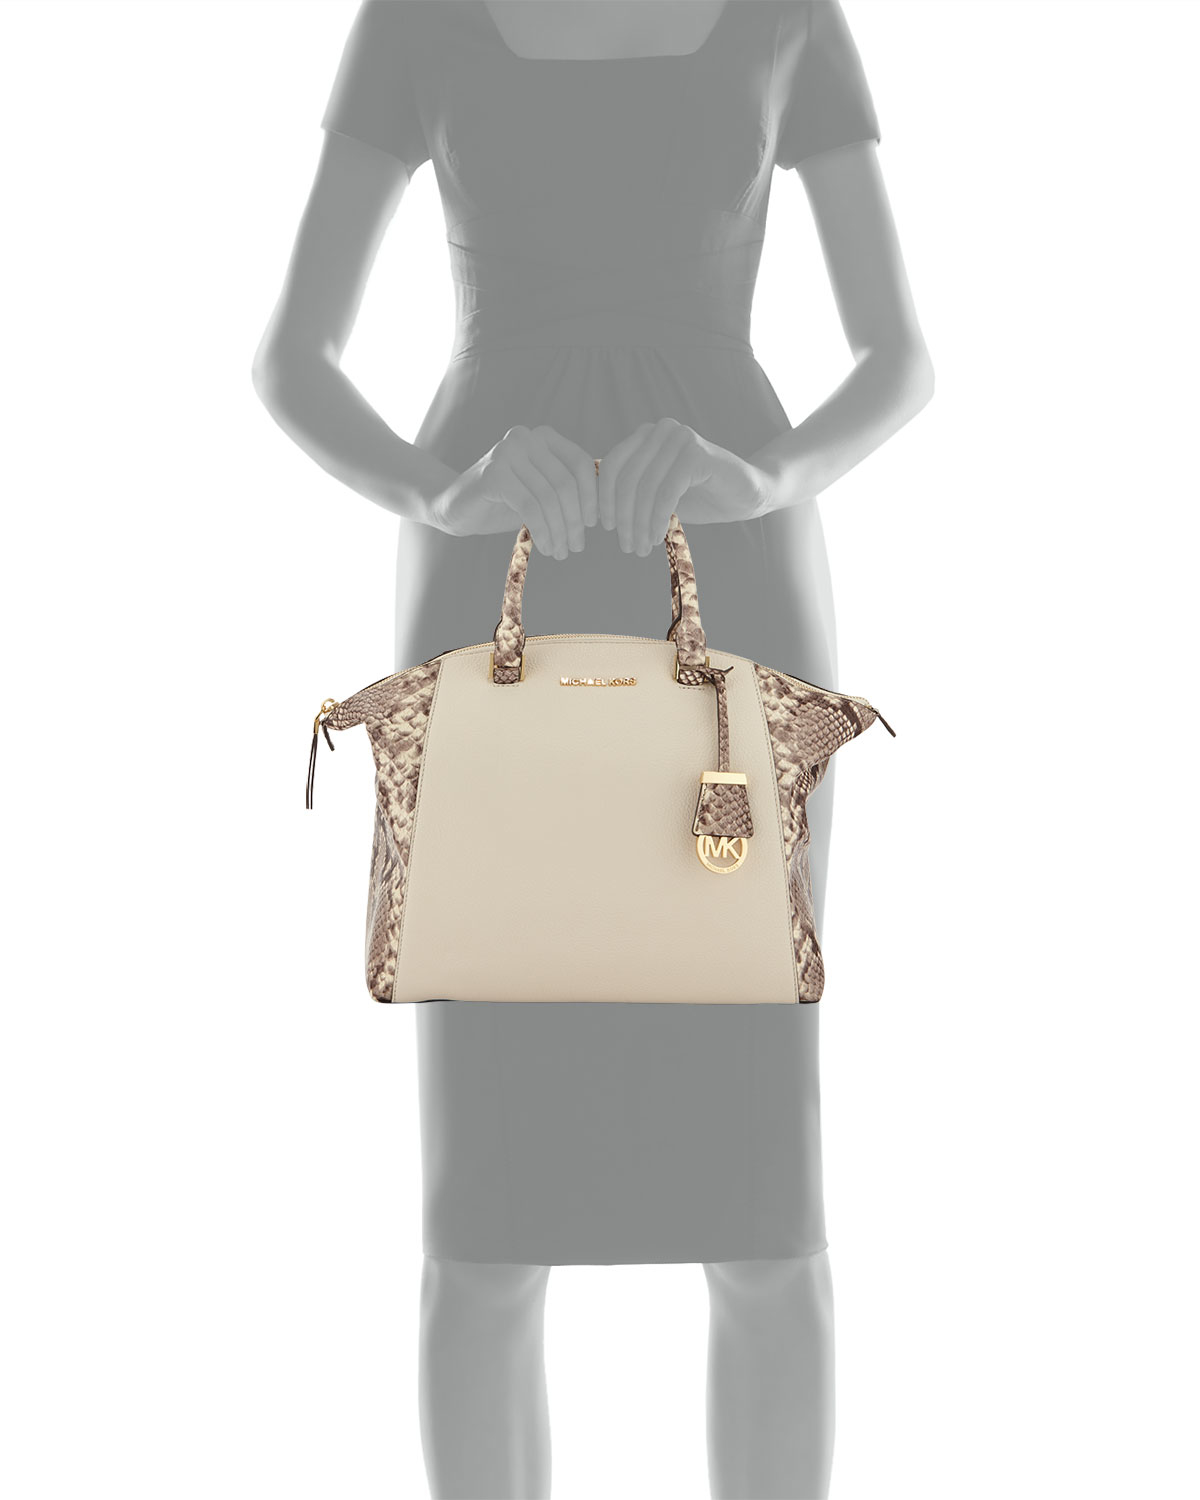 57cbe8452ba4 Gallery. Previously sold at: Neiman Marcus · Women's Michael By Michael  Kors Riley ...